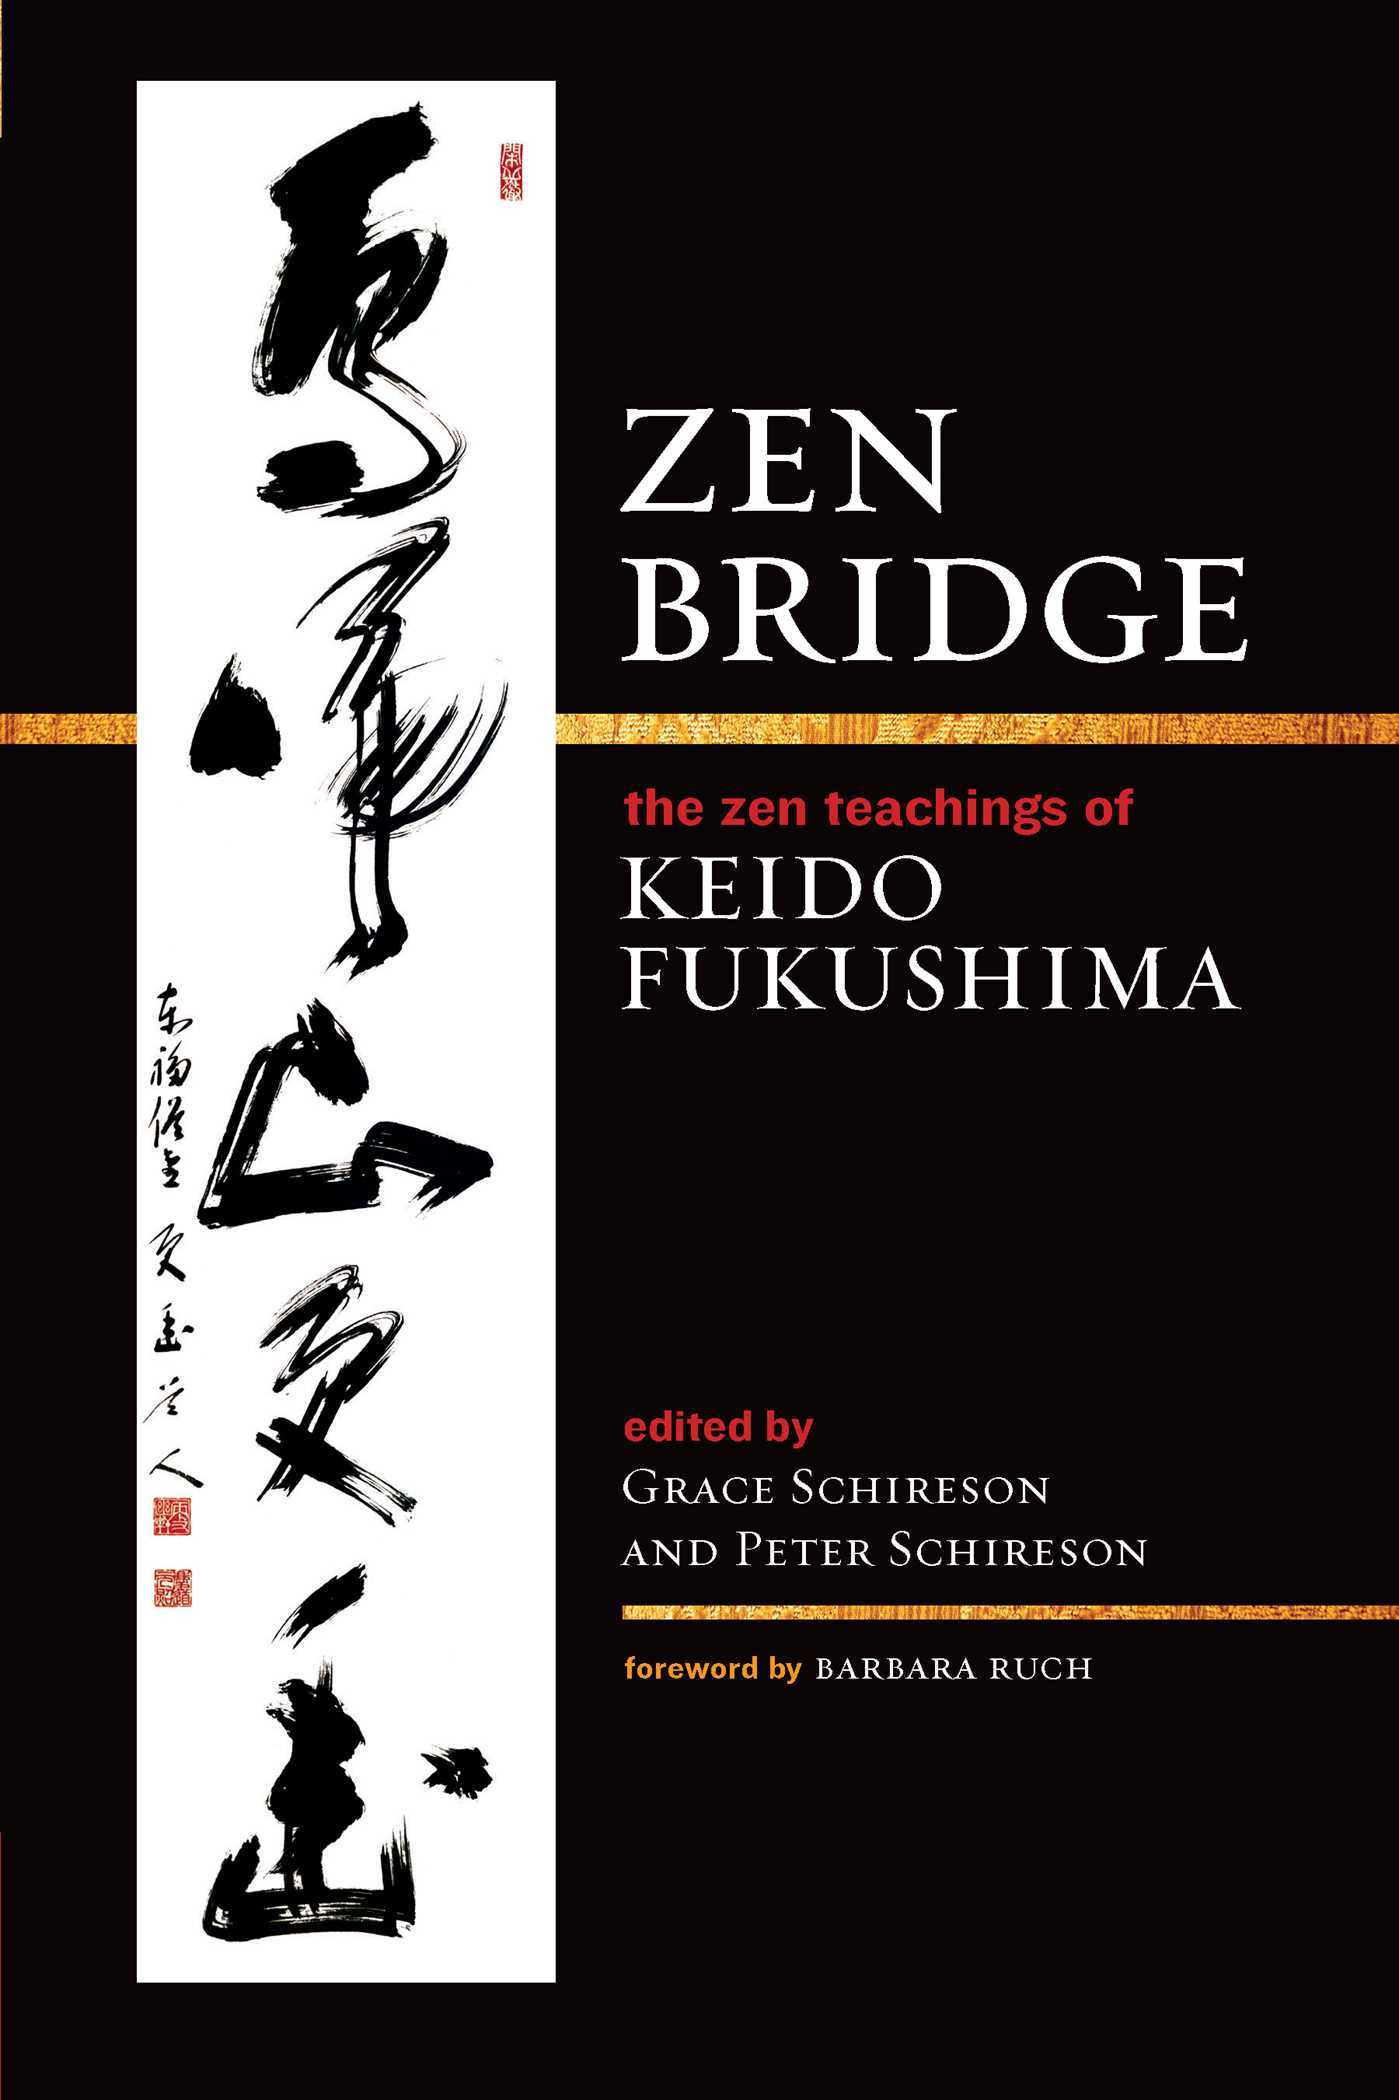 Zen Bridge The Zen Teachings of Keido Fukushima